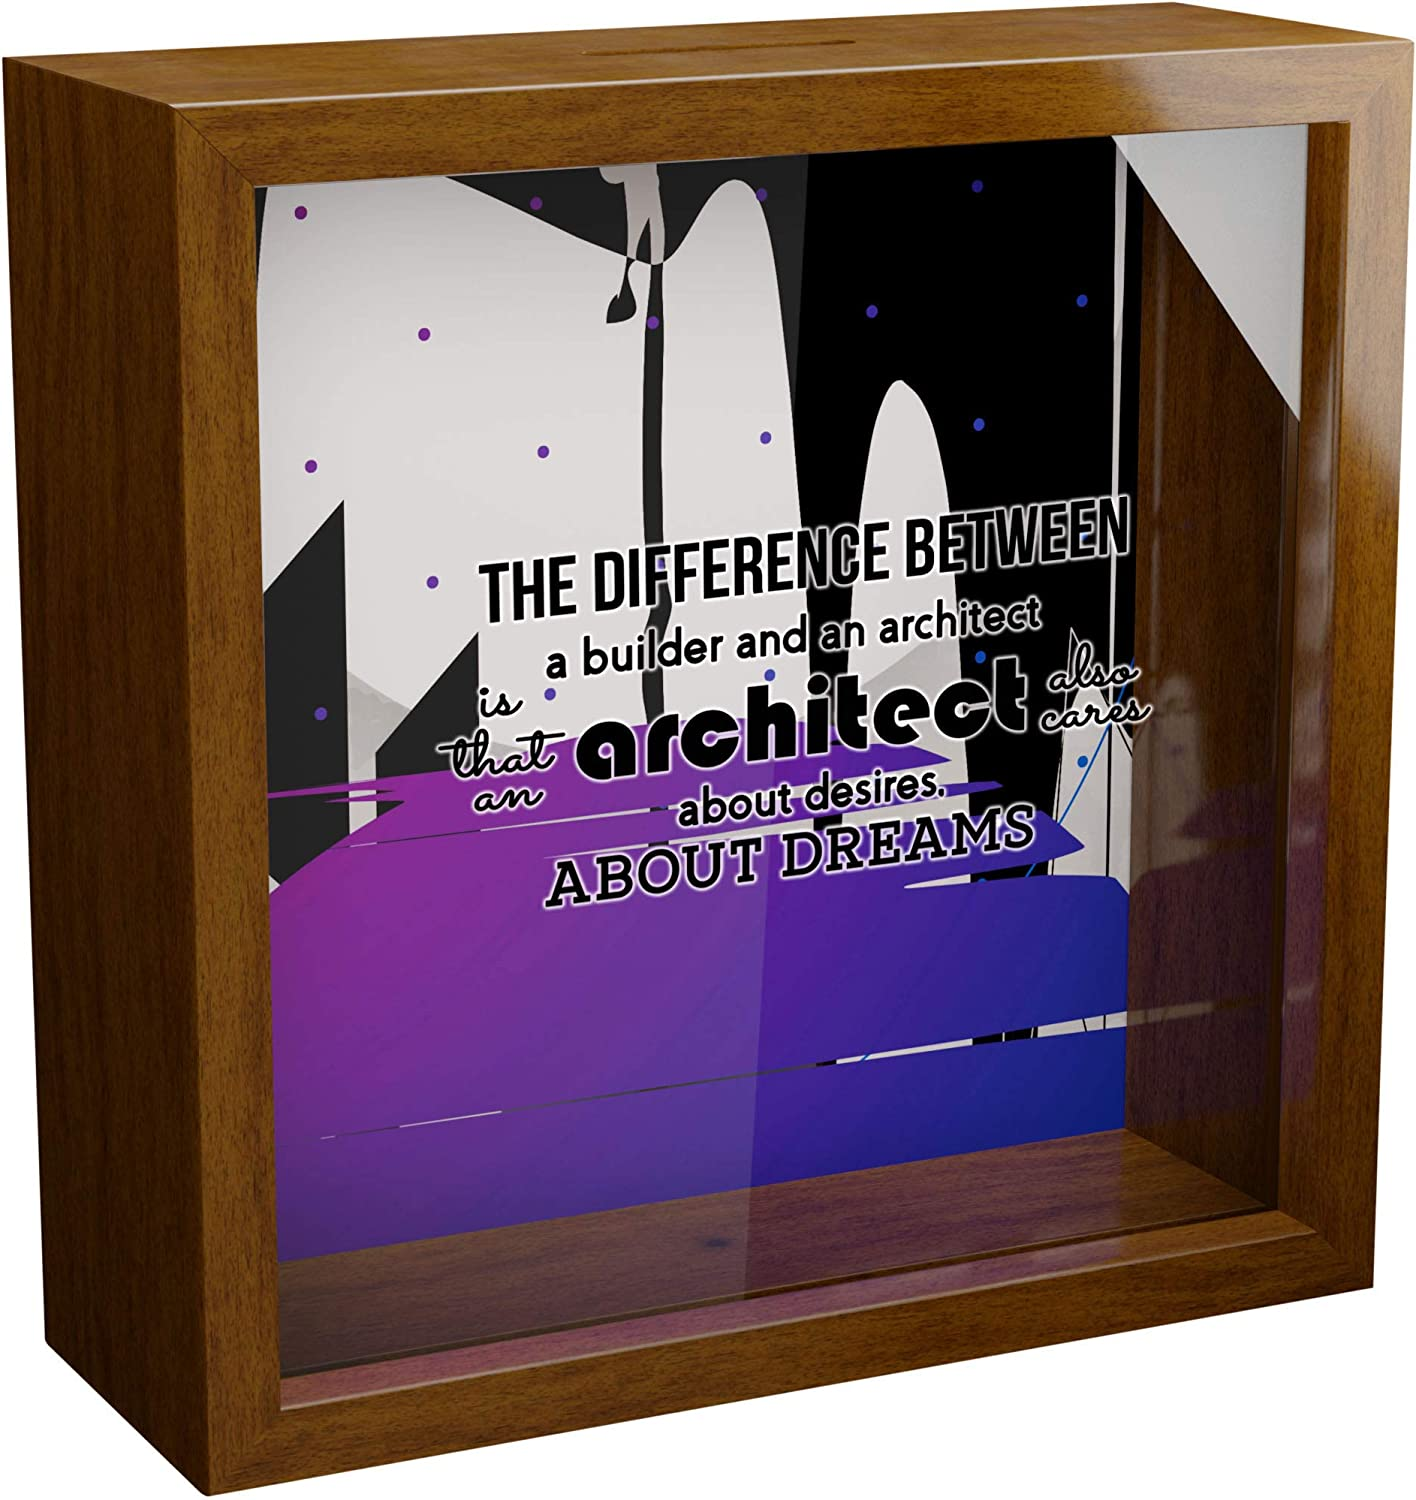 Architect Gift   A 6x6x2'' Themed Shadow Box for Architects   Architecture Gift for Women & Men   Present for Architect Student   Architectural Home Decor   Wooden Architect Keepsake Picture Frame